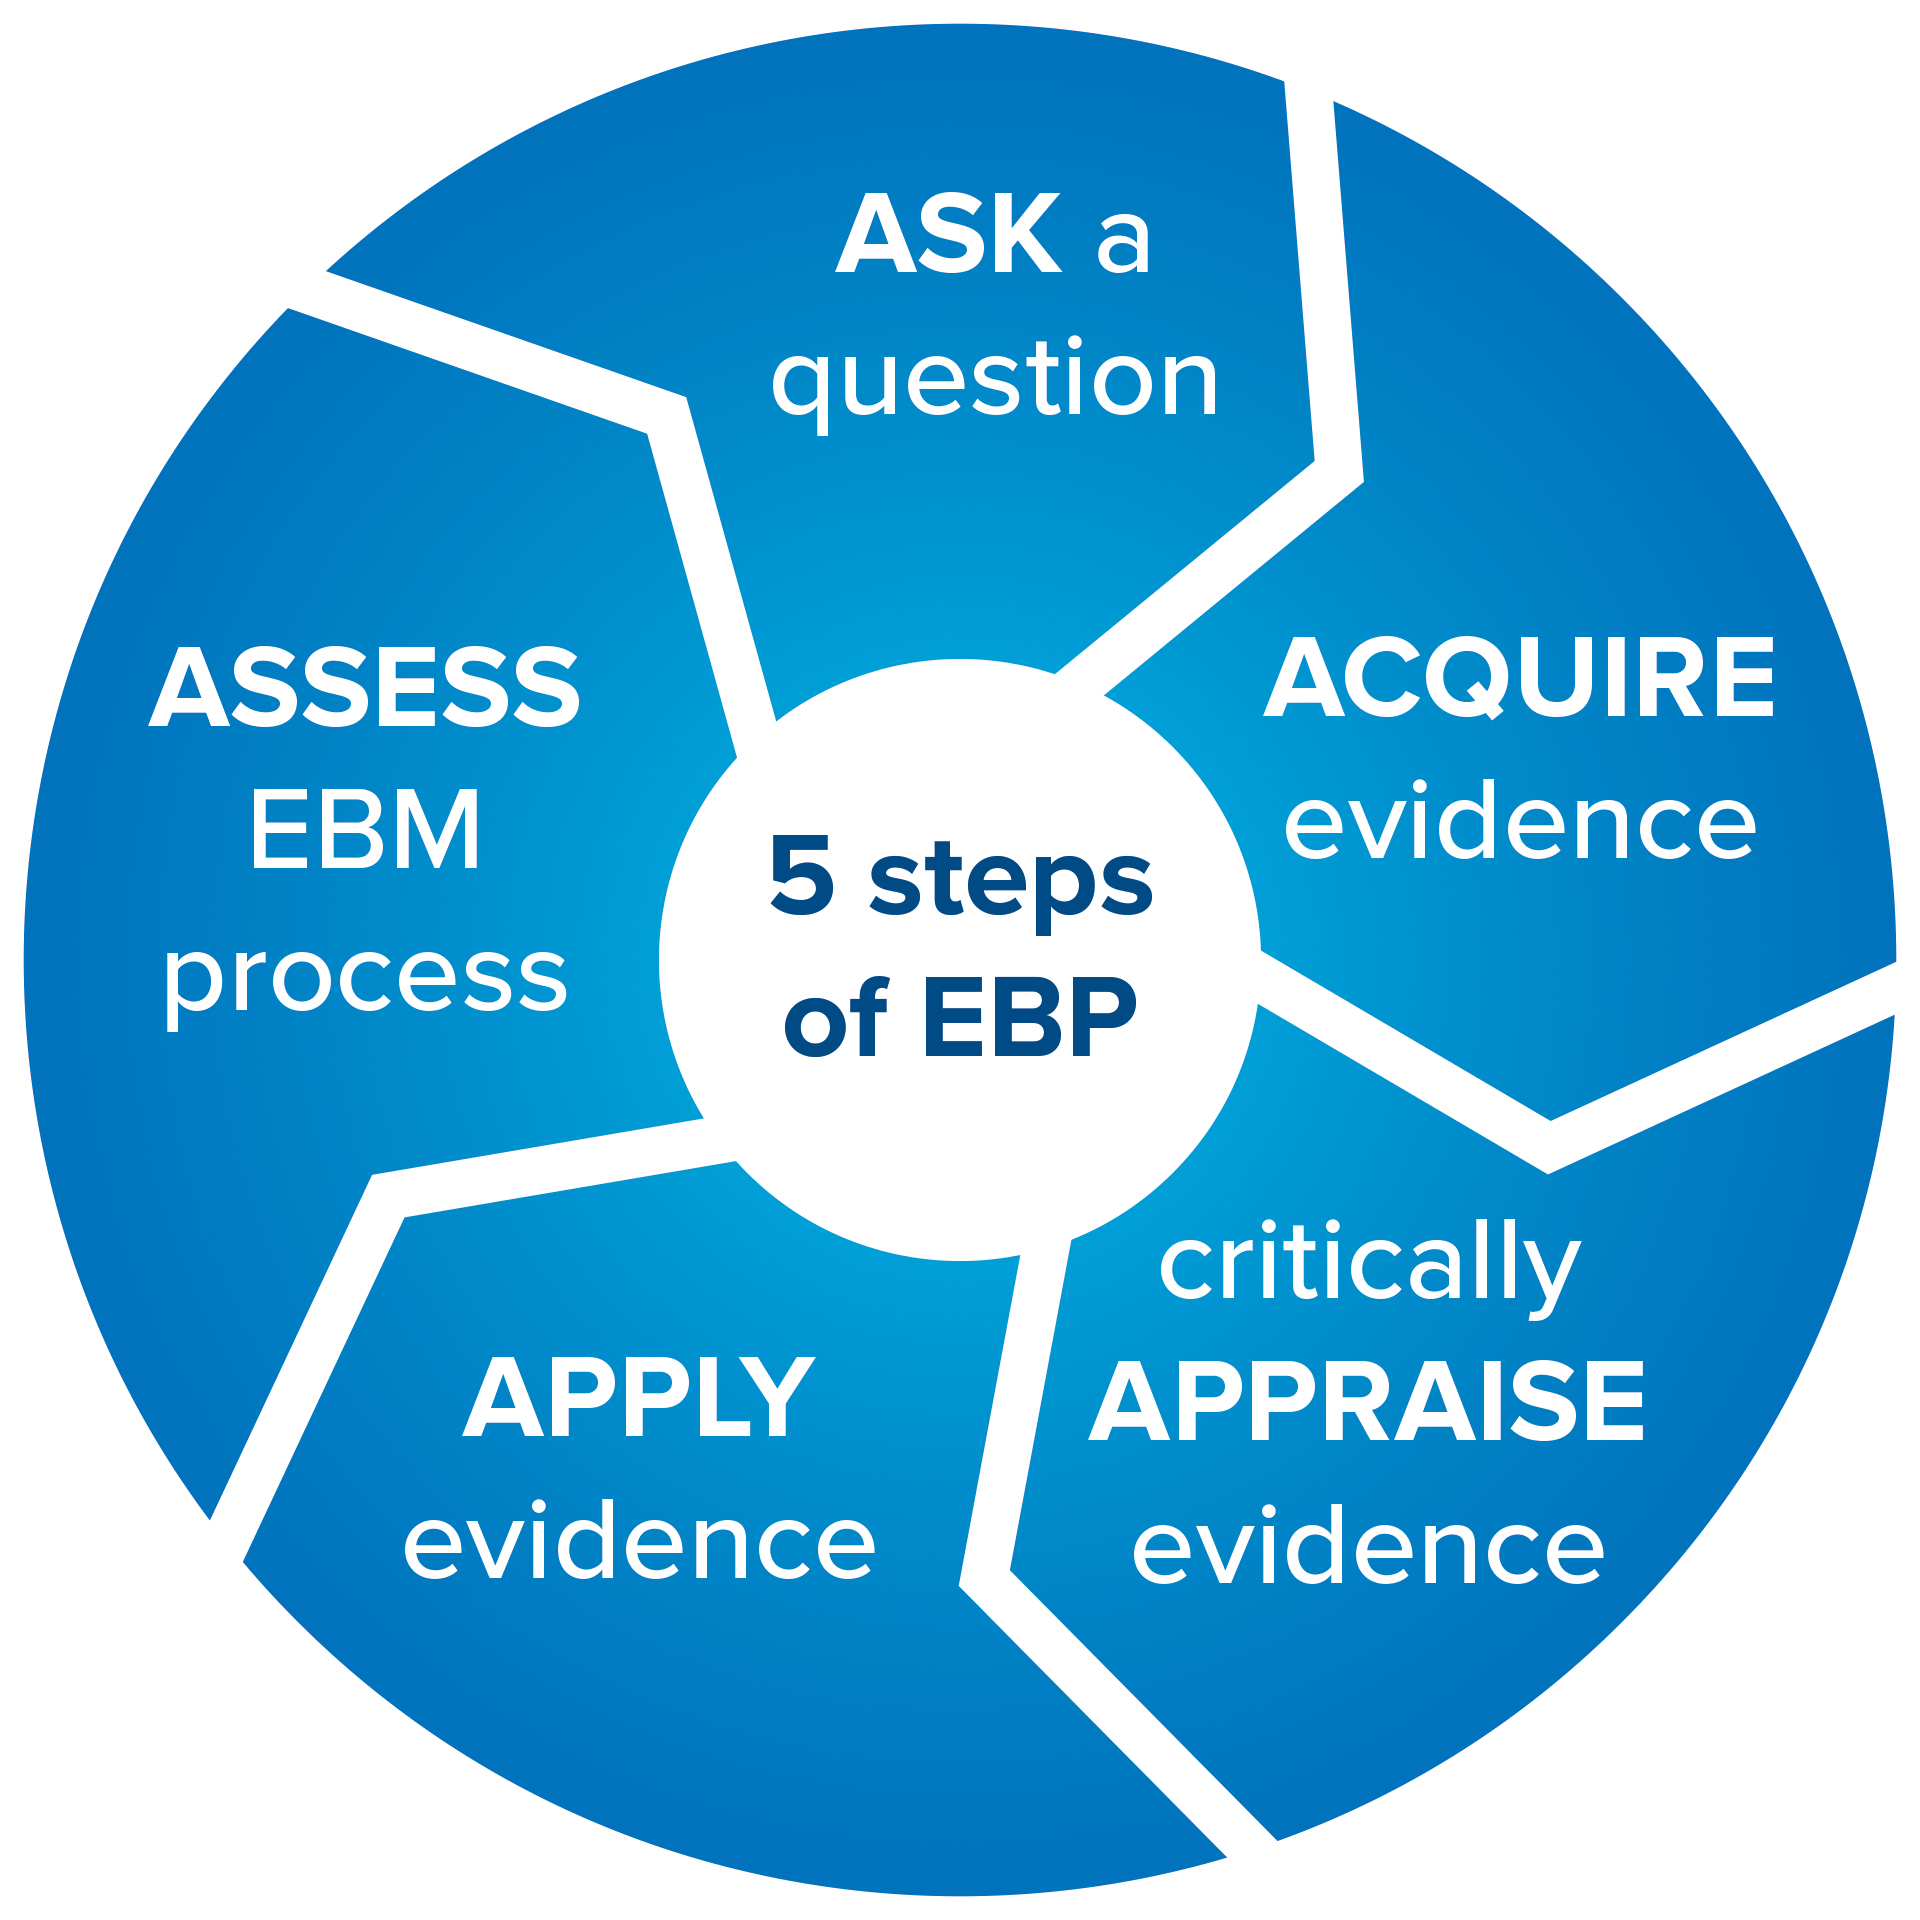 image of EBP cycle